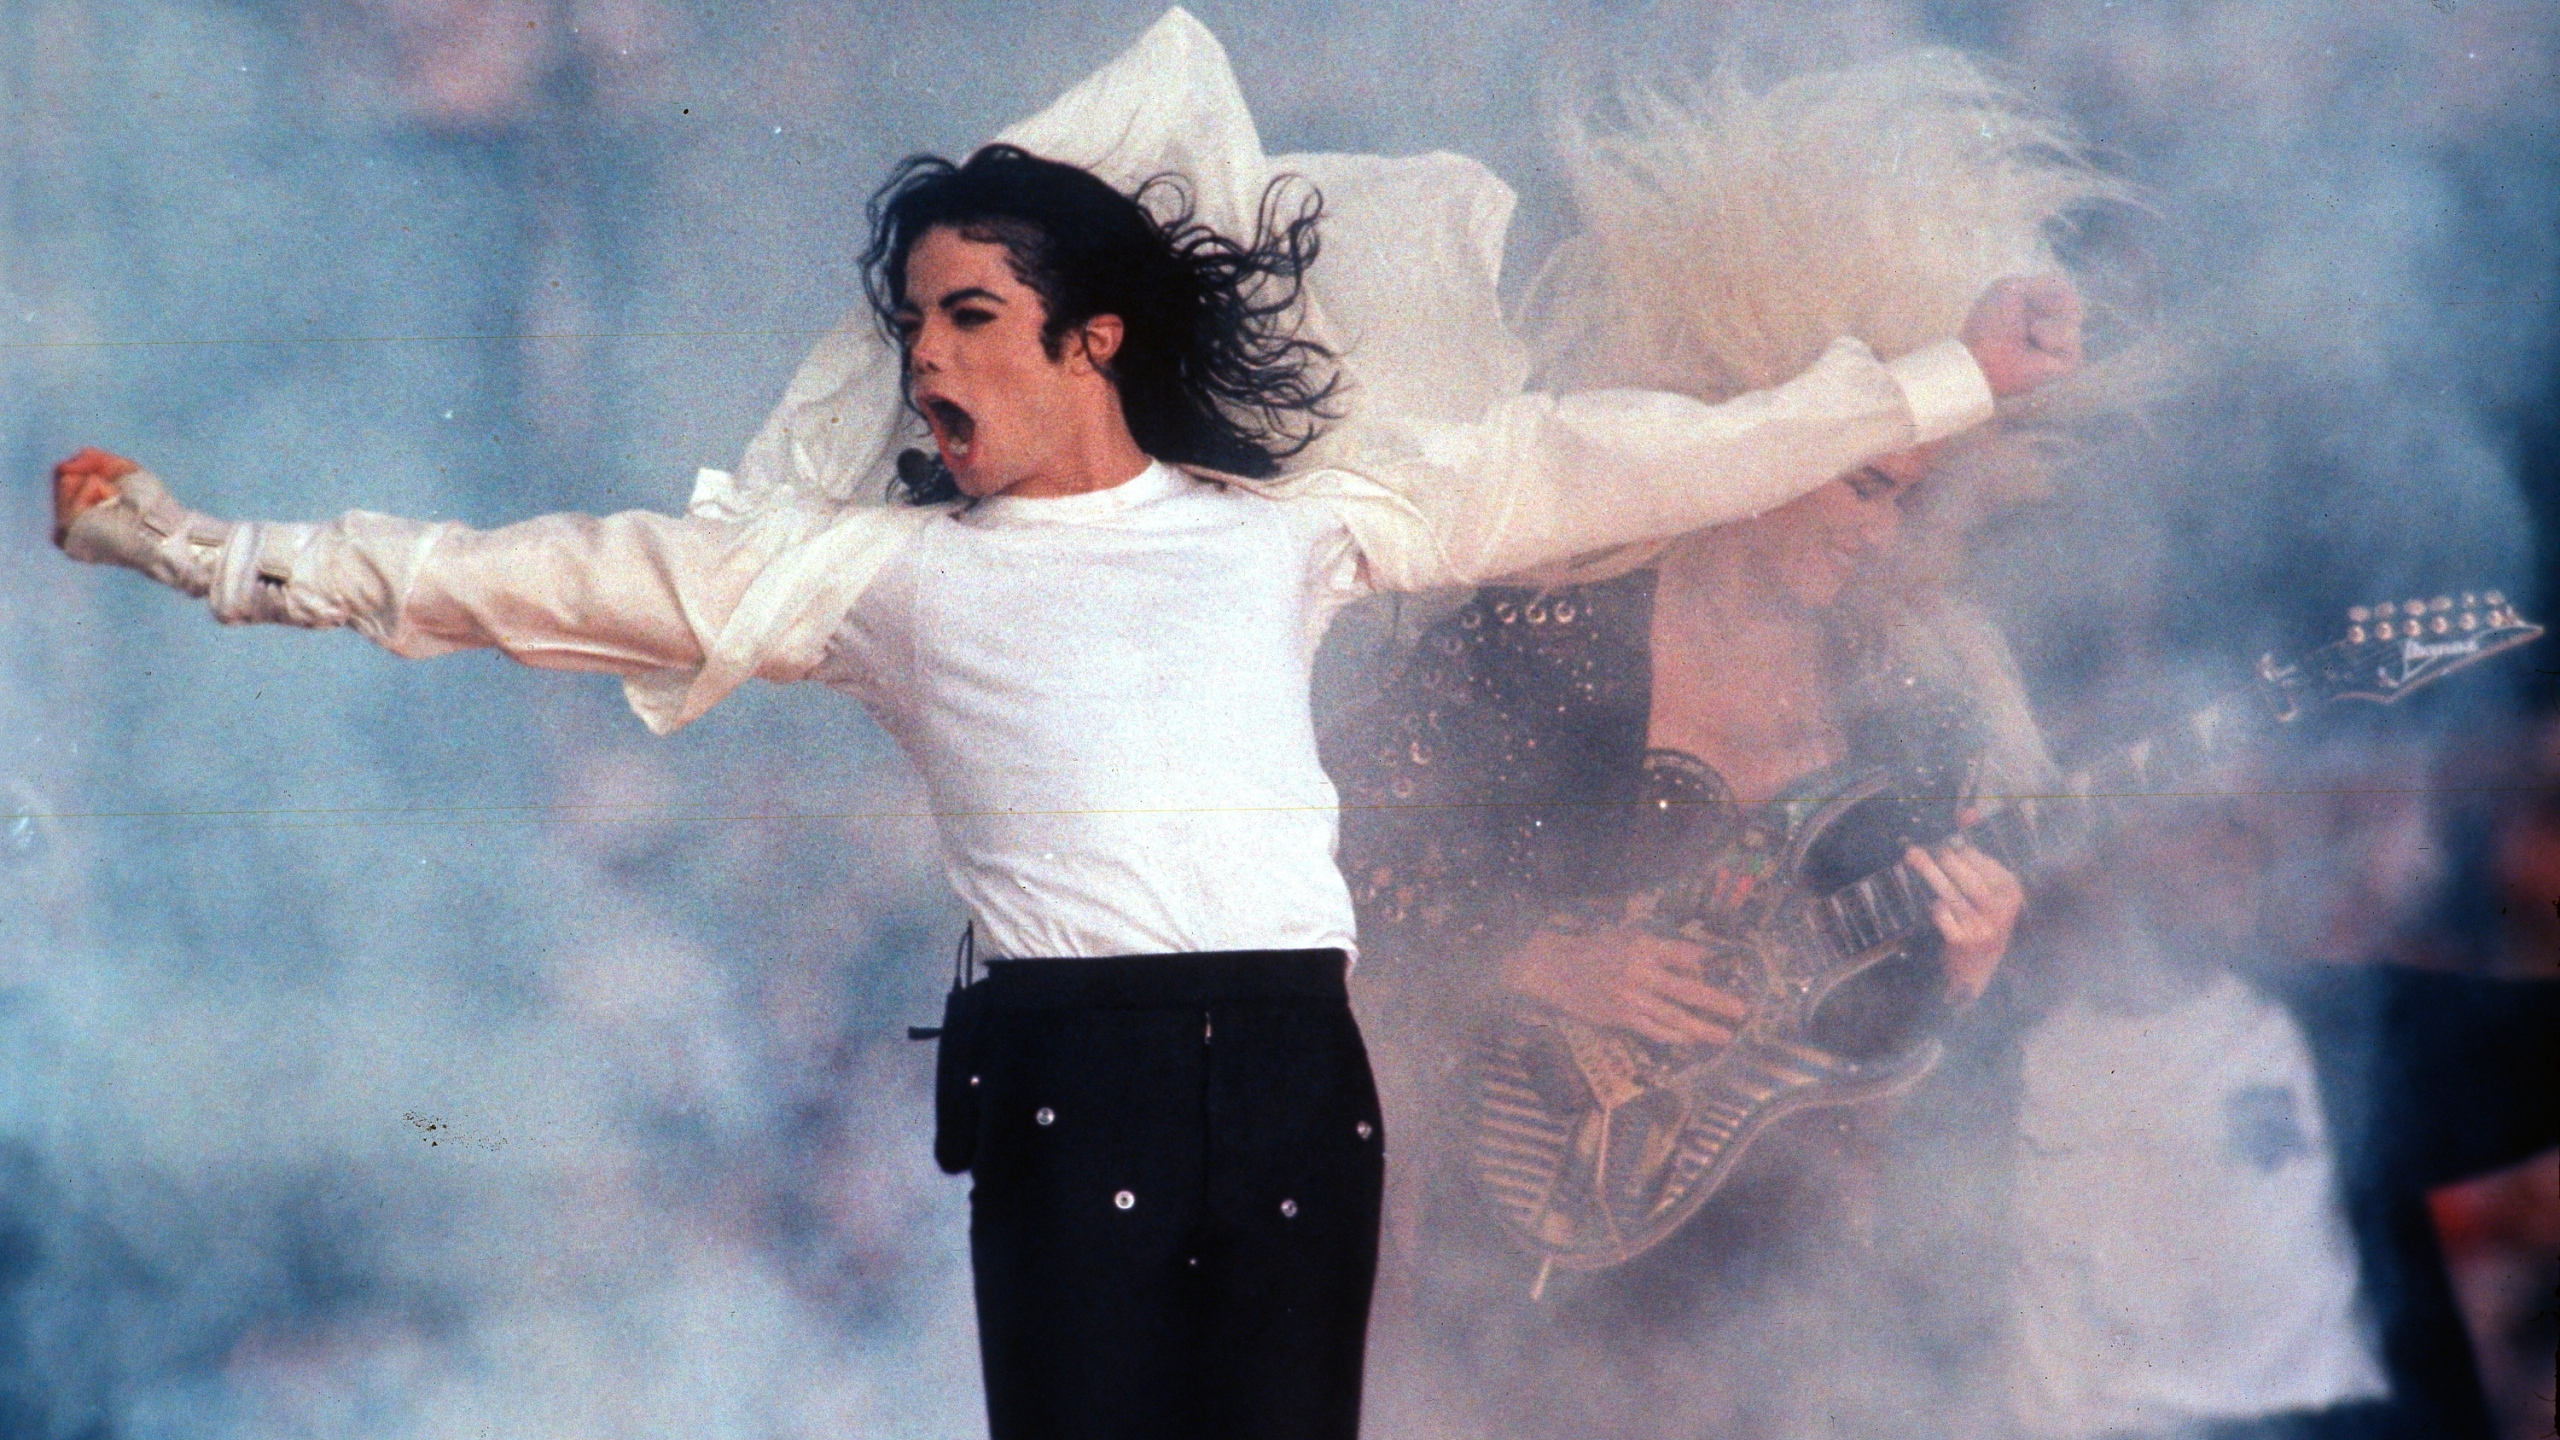 In this Feb. 1, 1993, file photo, Michael Jackson performs during the halftime show at the Super Bowl in Pasadena. (Rusty Kennedy/Associated Press)